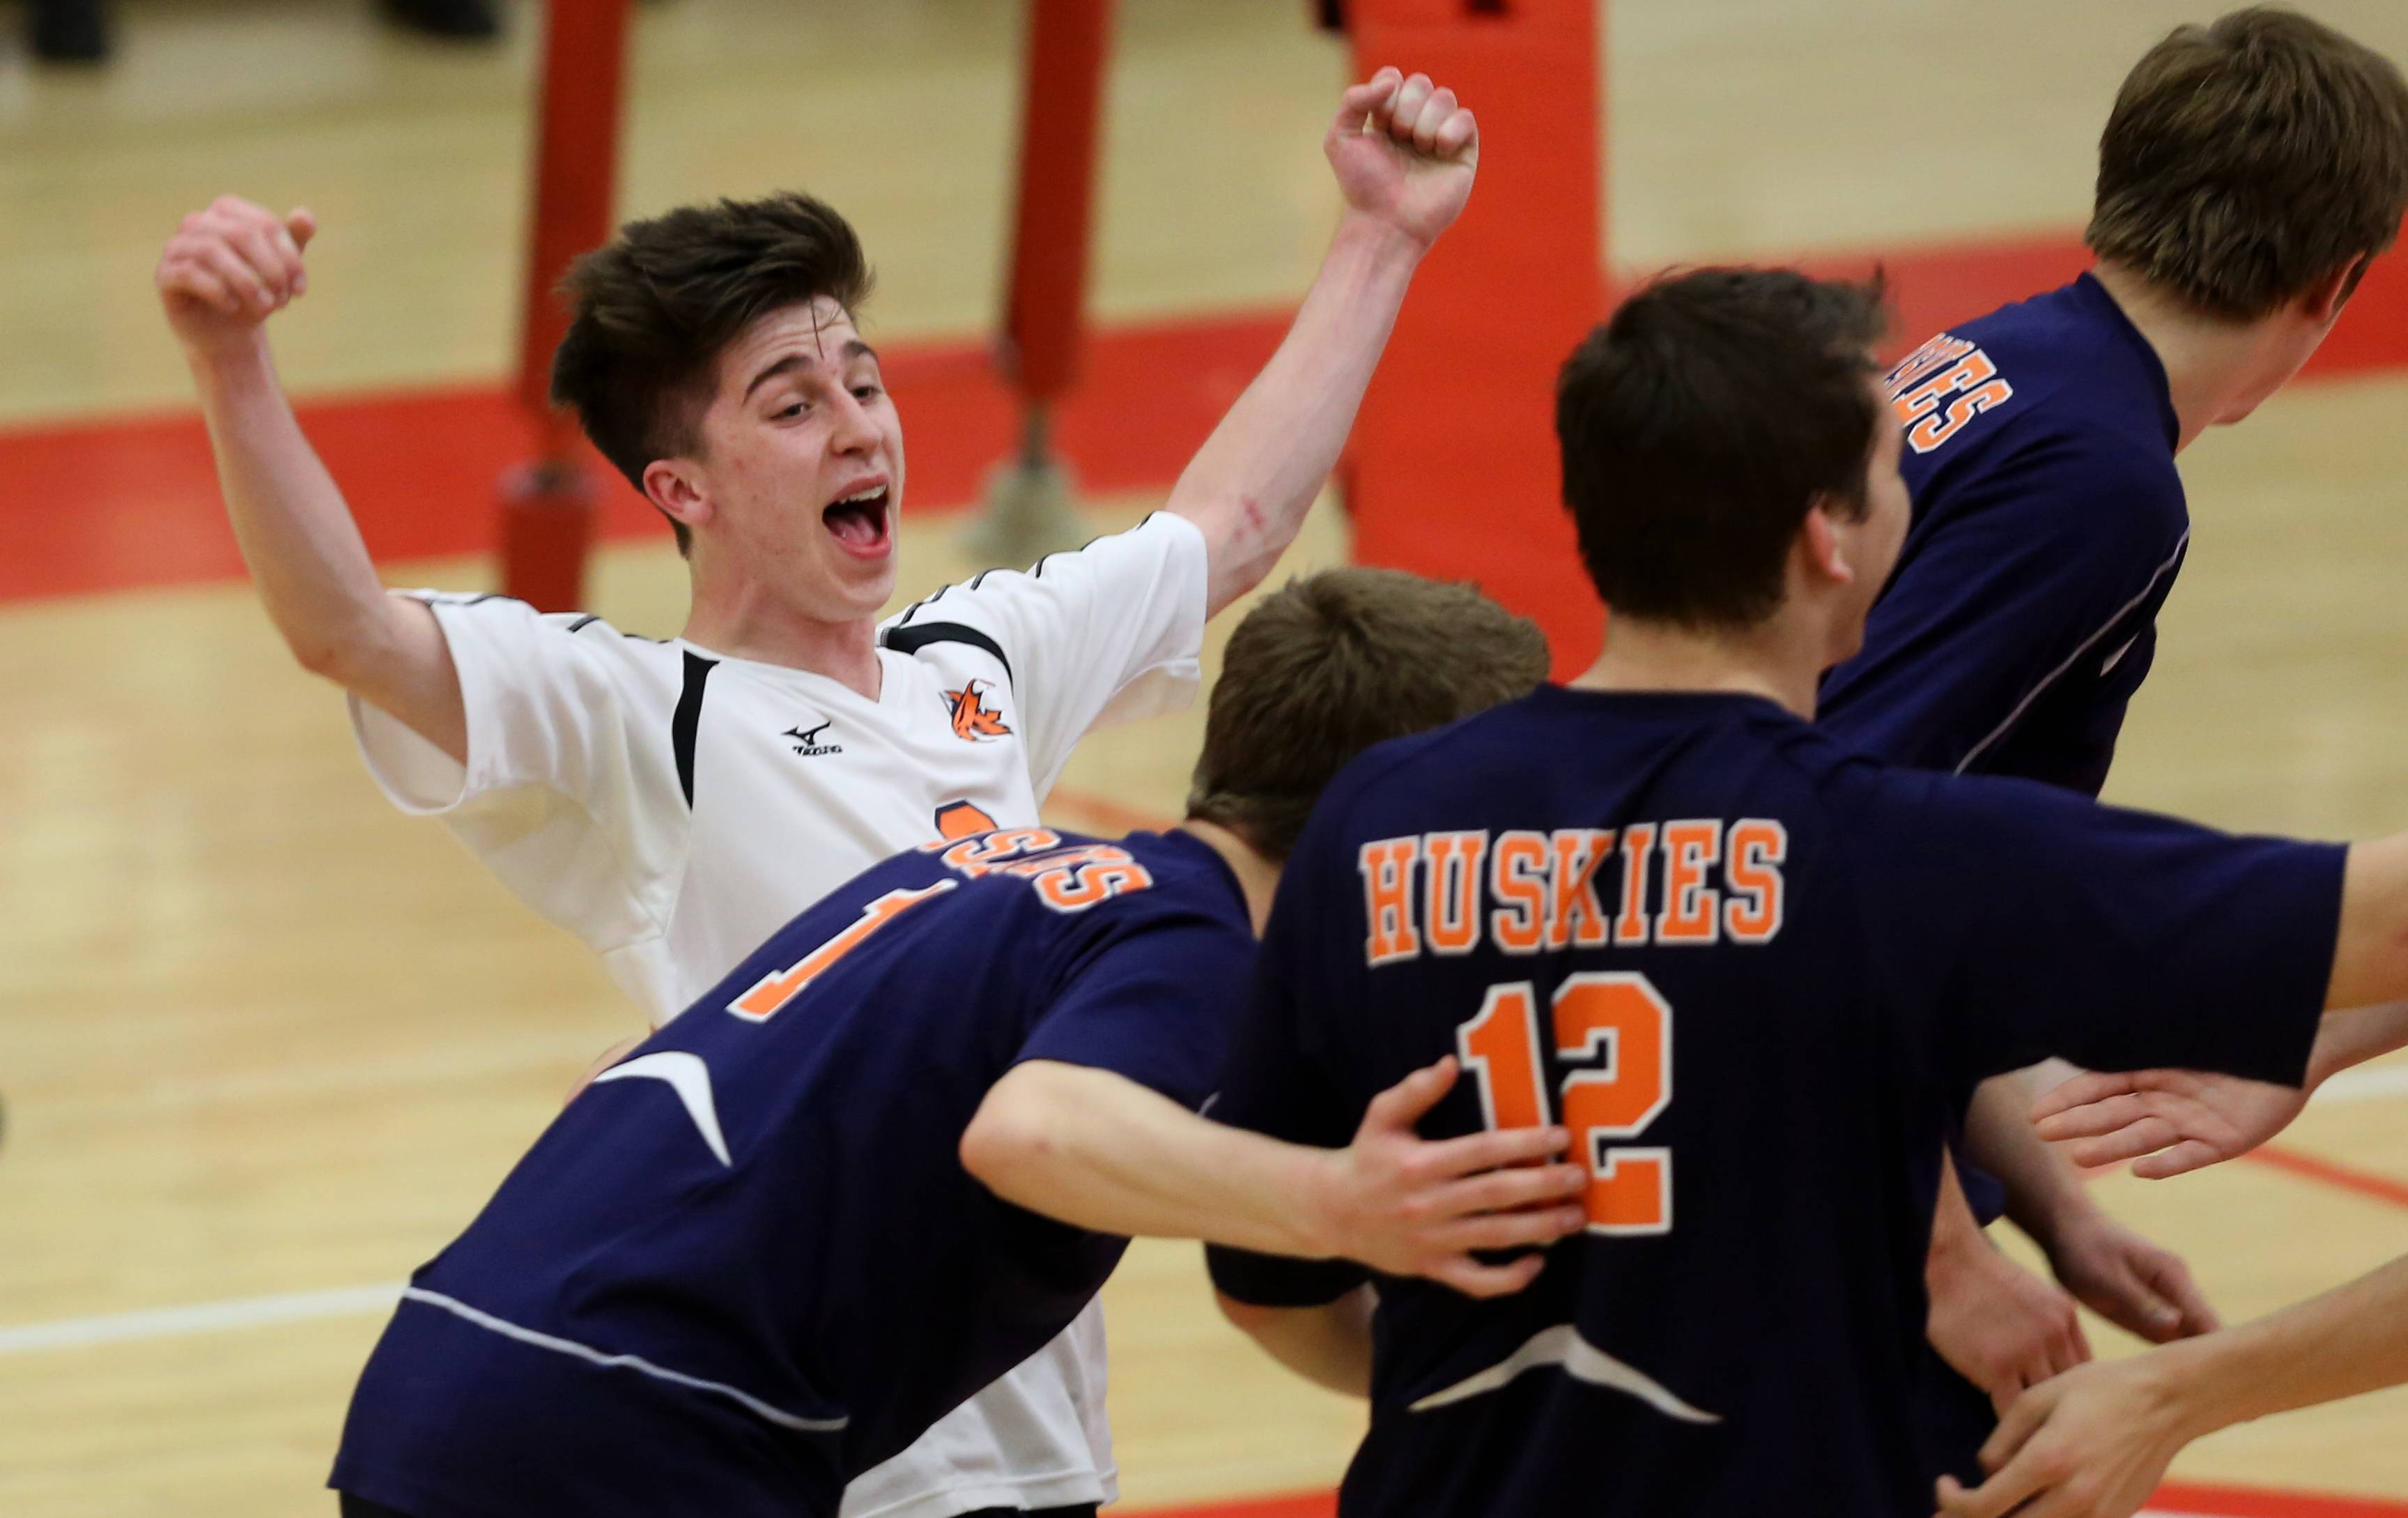 Naperville North's Will Littell celebrates a point against Naperville Central.